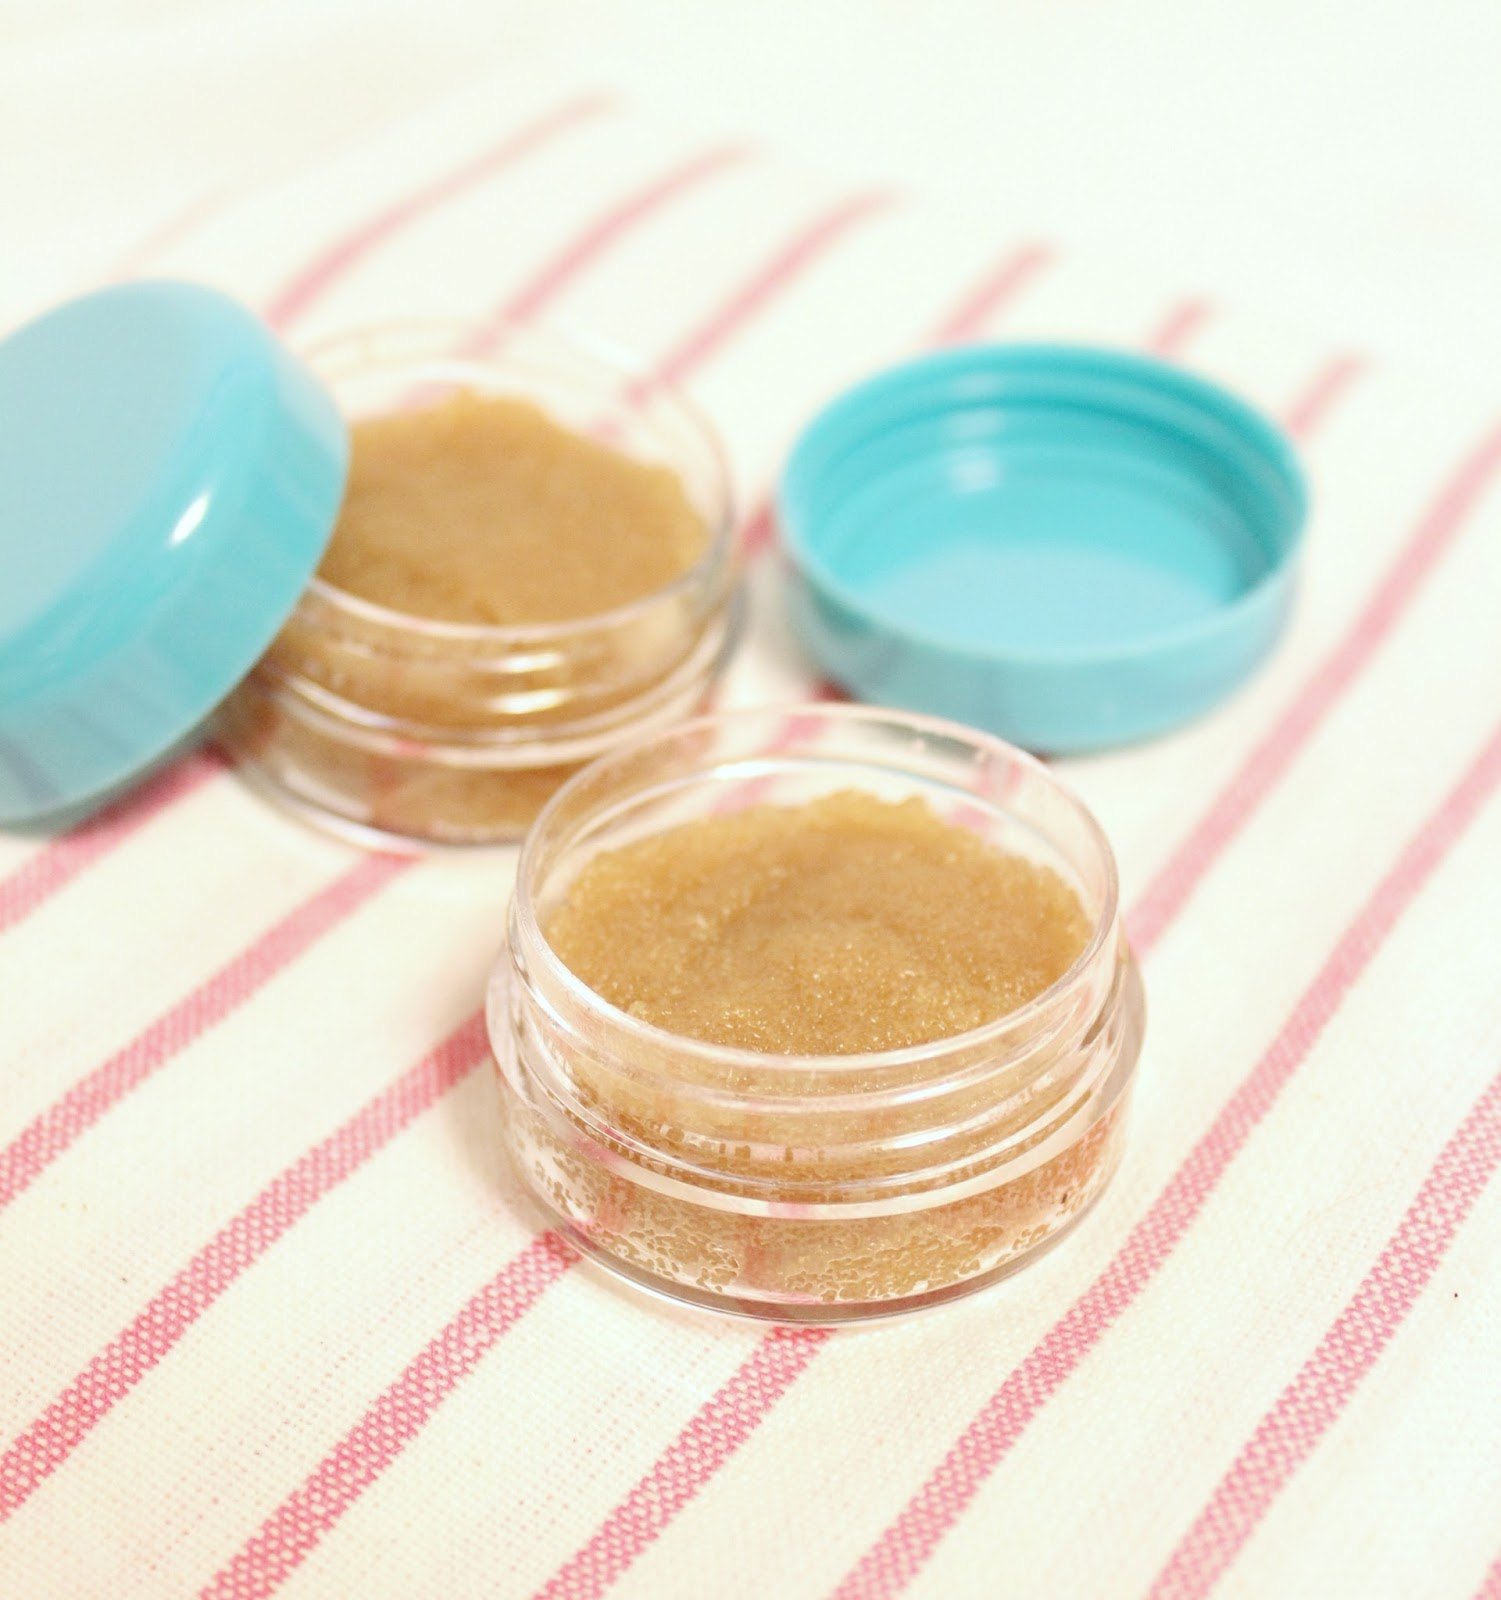 Gingerbread lip scrub